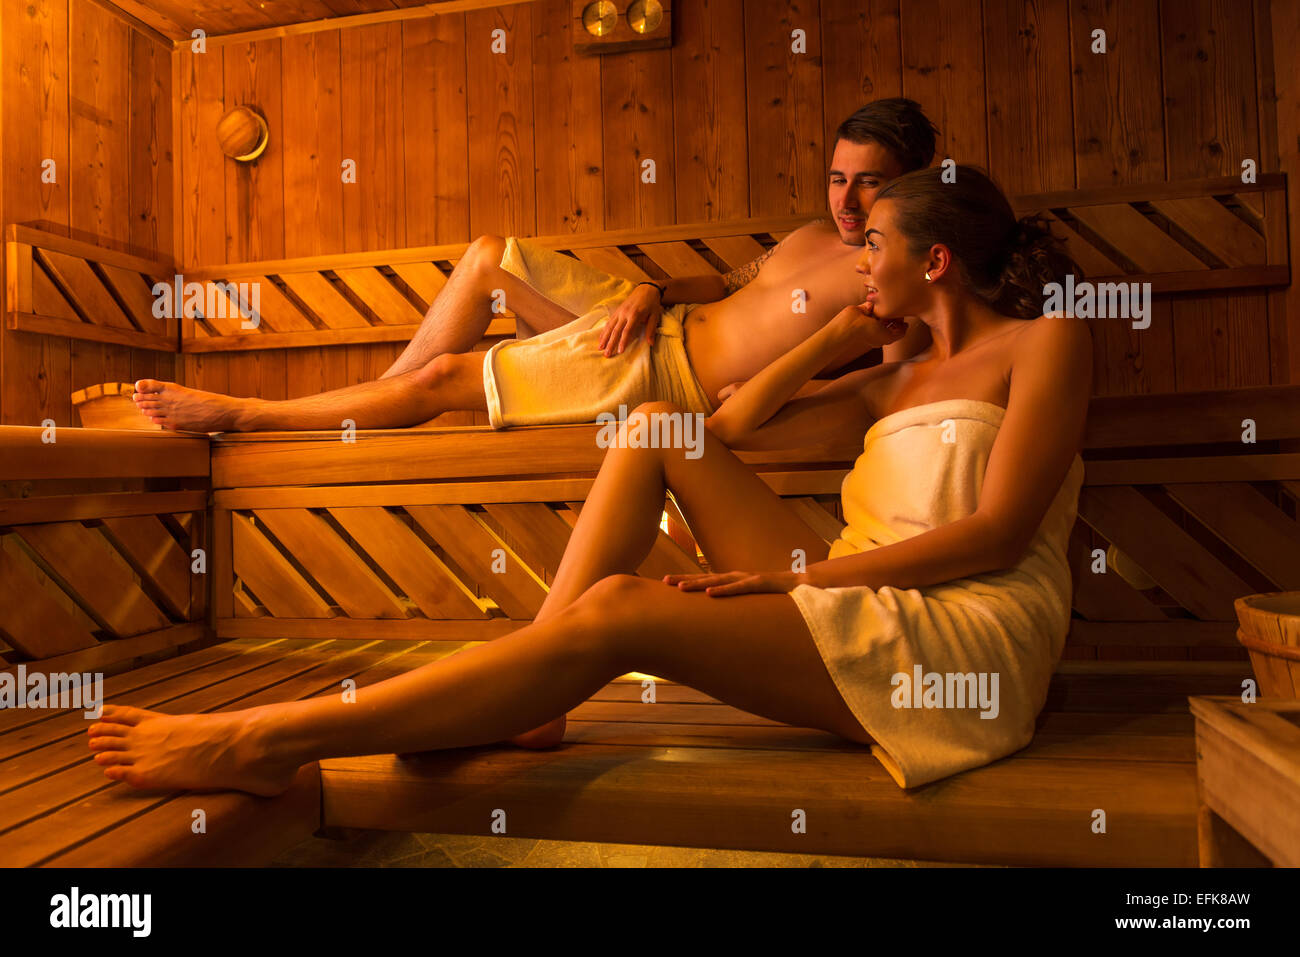 Young couple in sauna - Stock Image